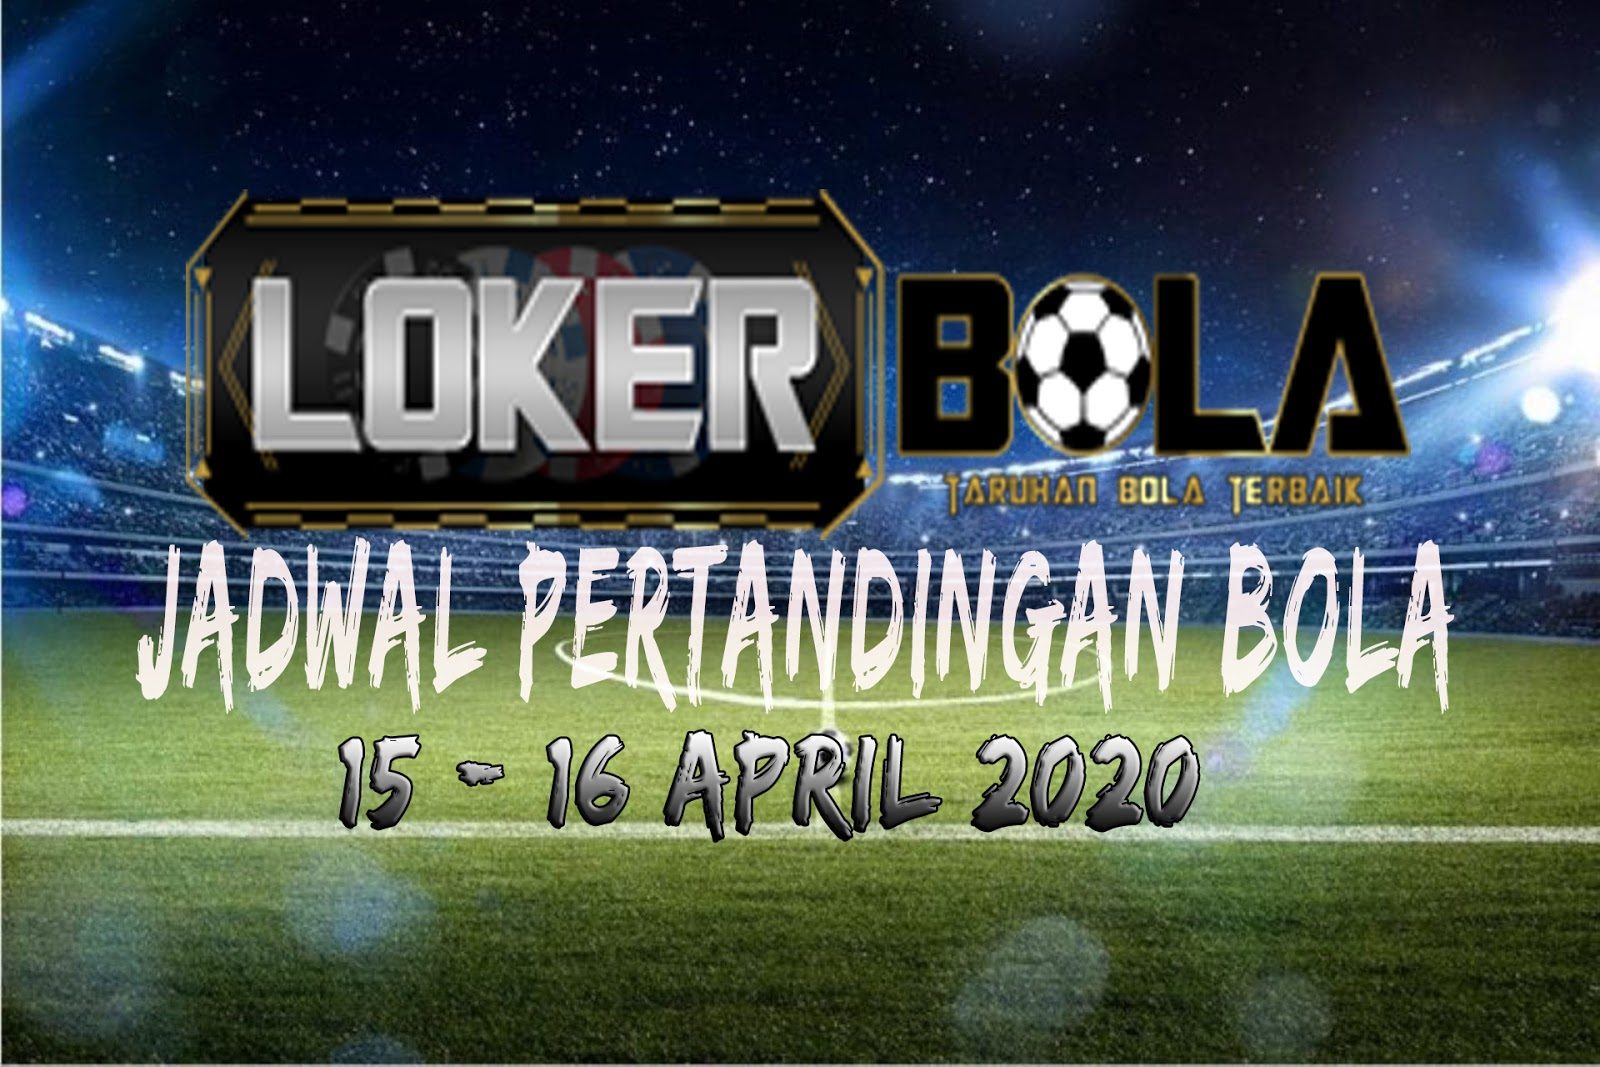 JADWAL PERTANDINGAN BOLA 15 – 16 APRIL 2020